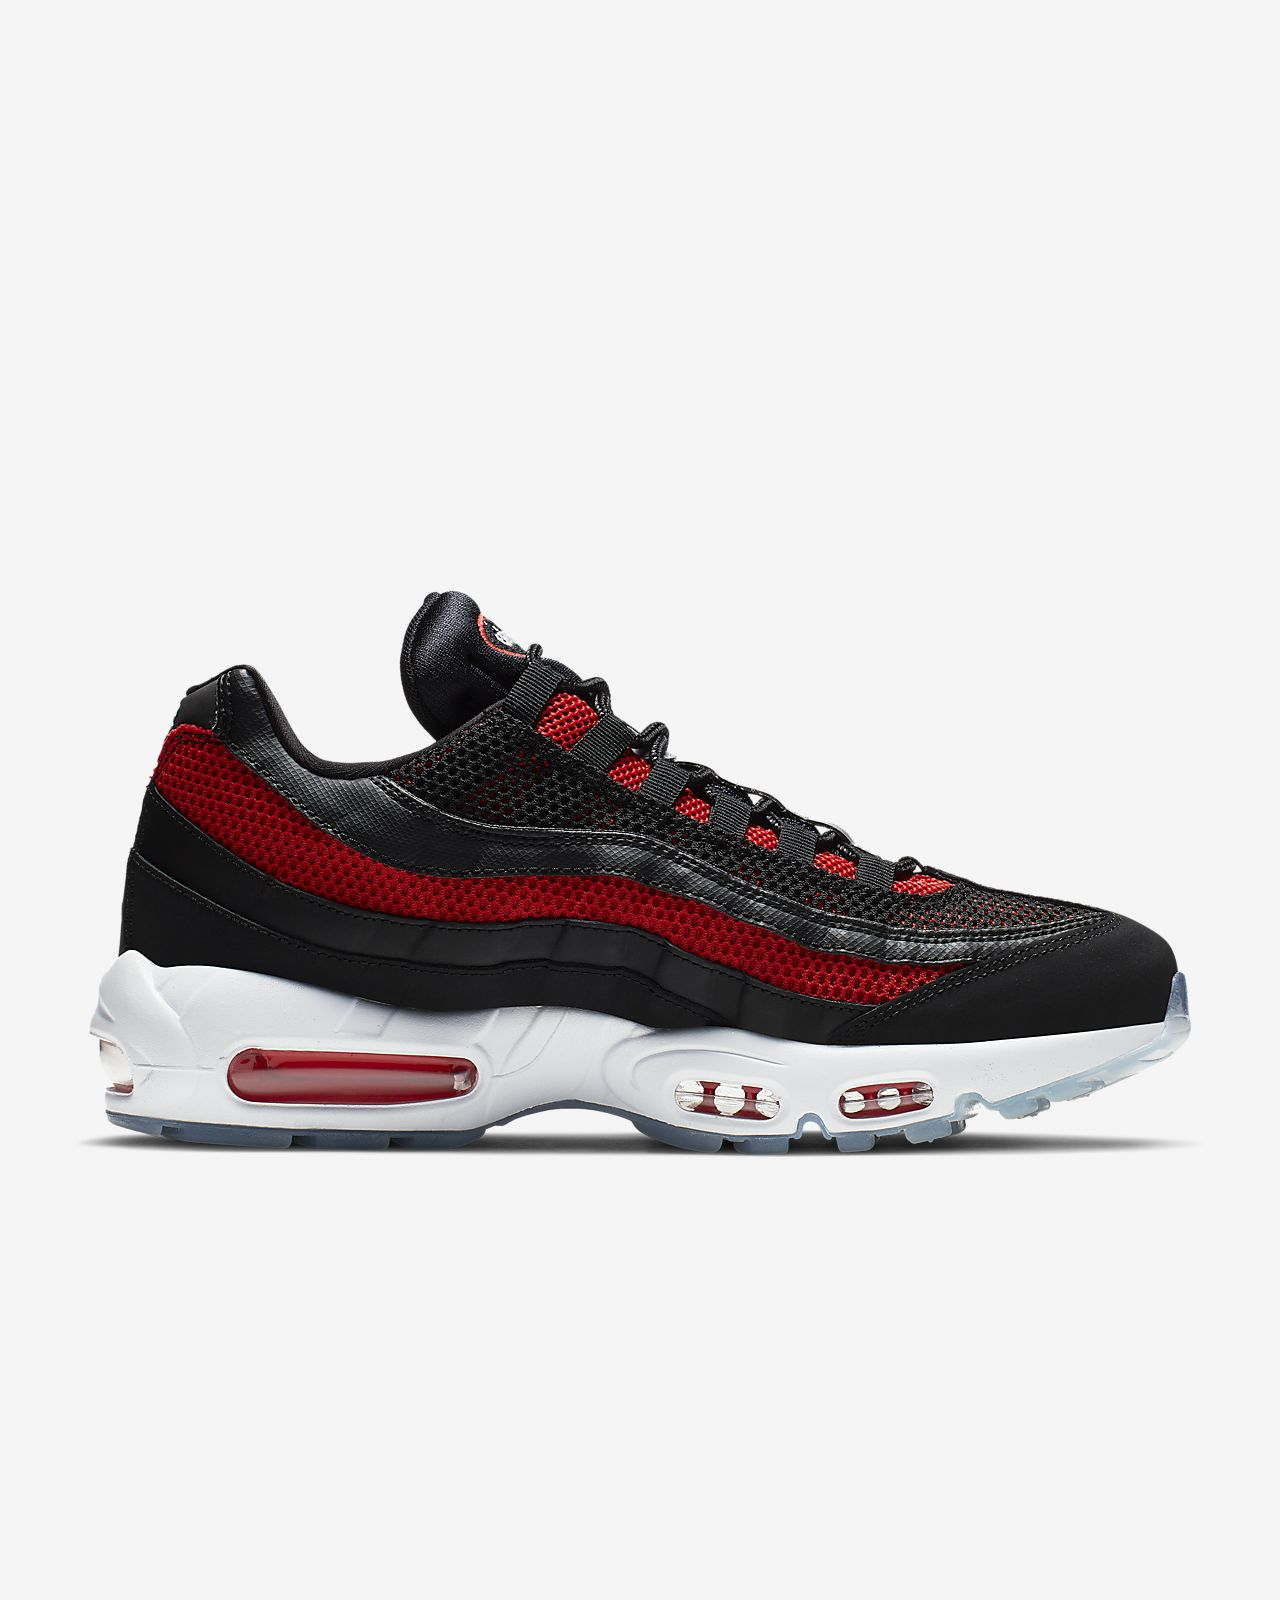 93f021ea0441 Low Resolution Nike Air Max 95 Essential Men s Shoe Nike Air Max 95  Essential Men s Shoe